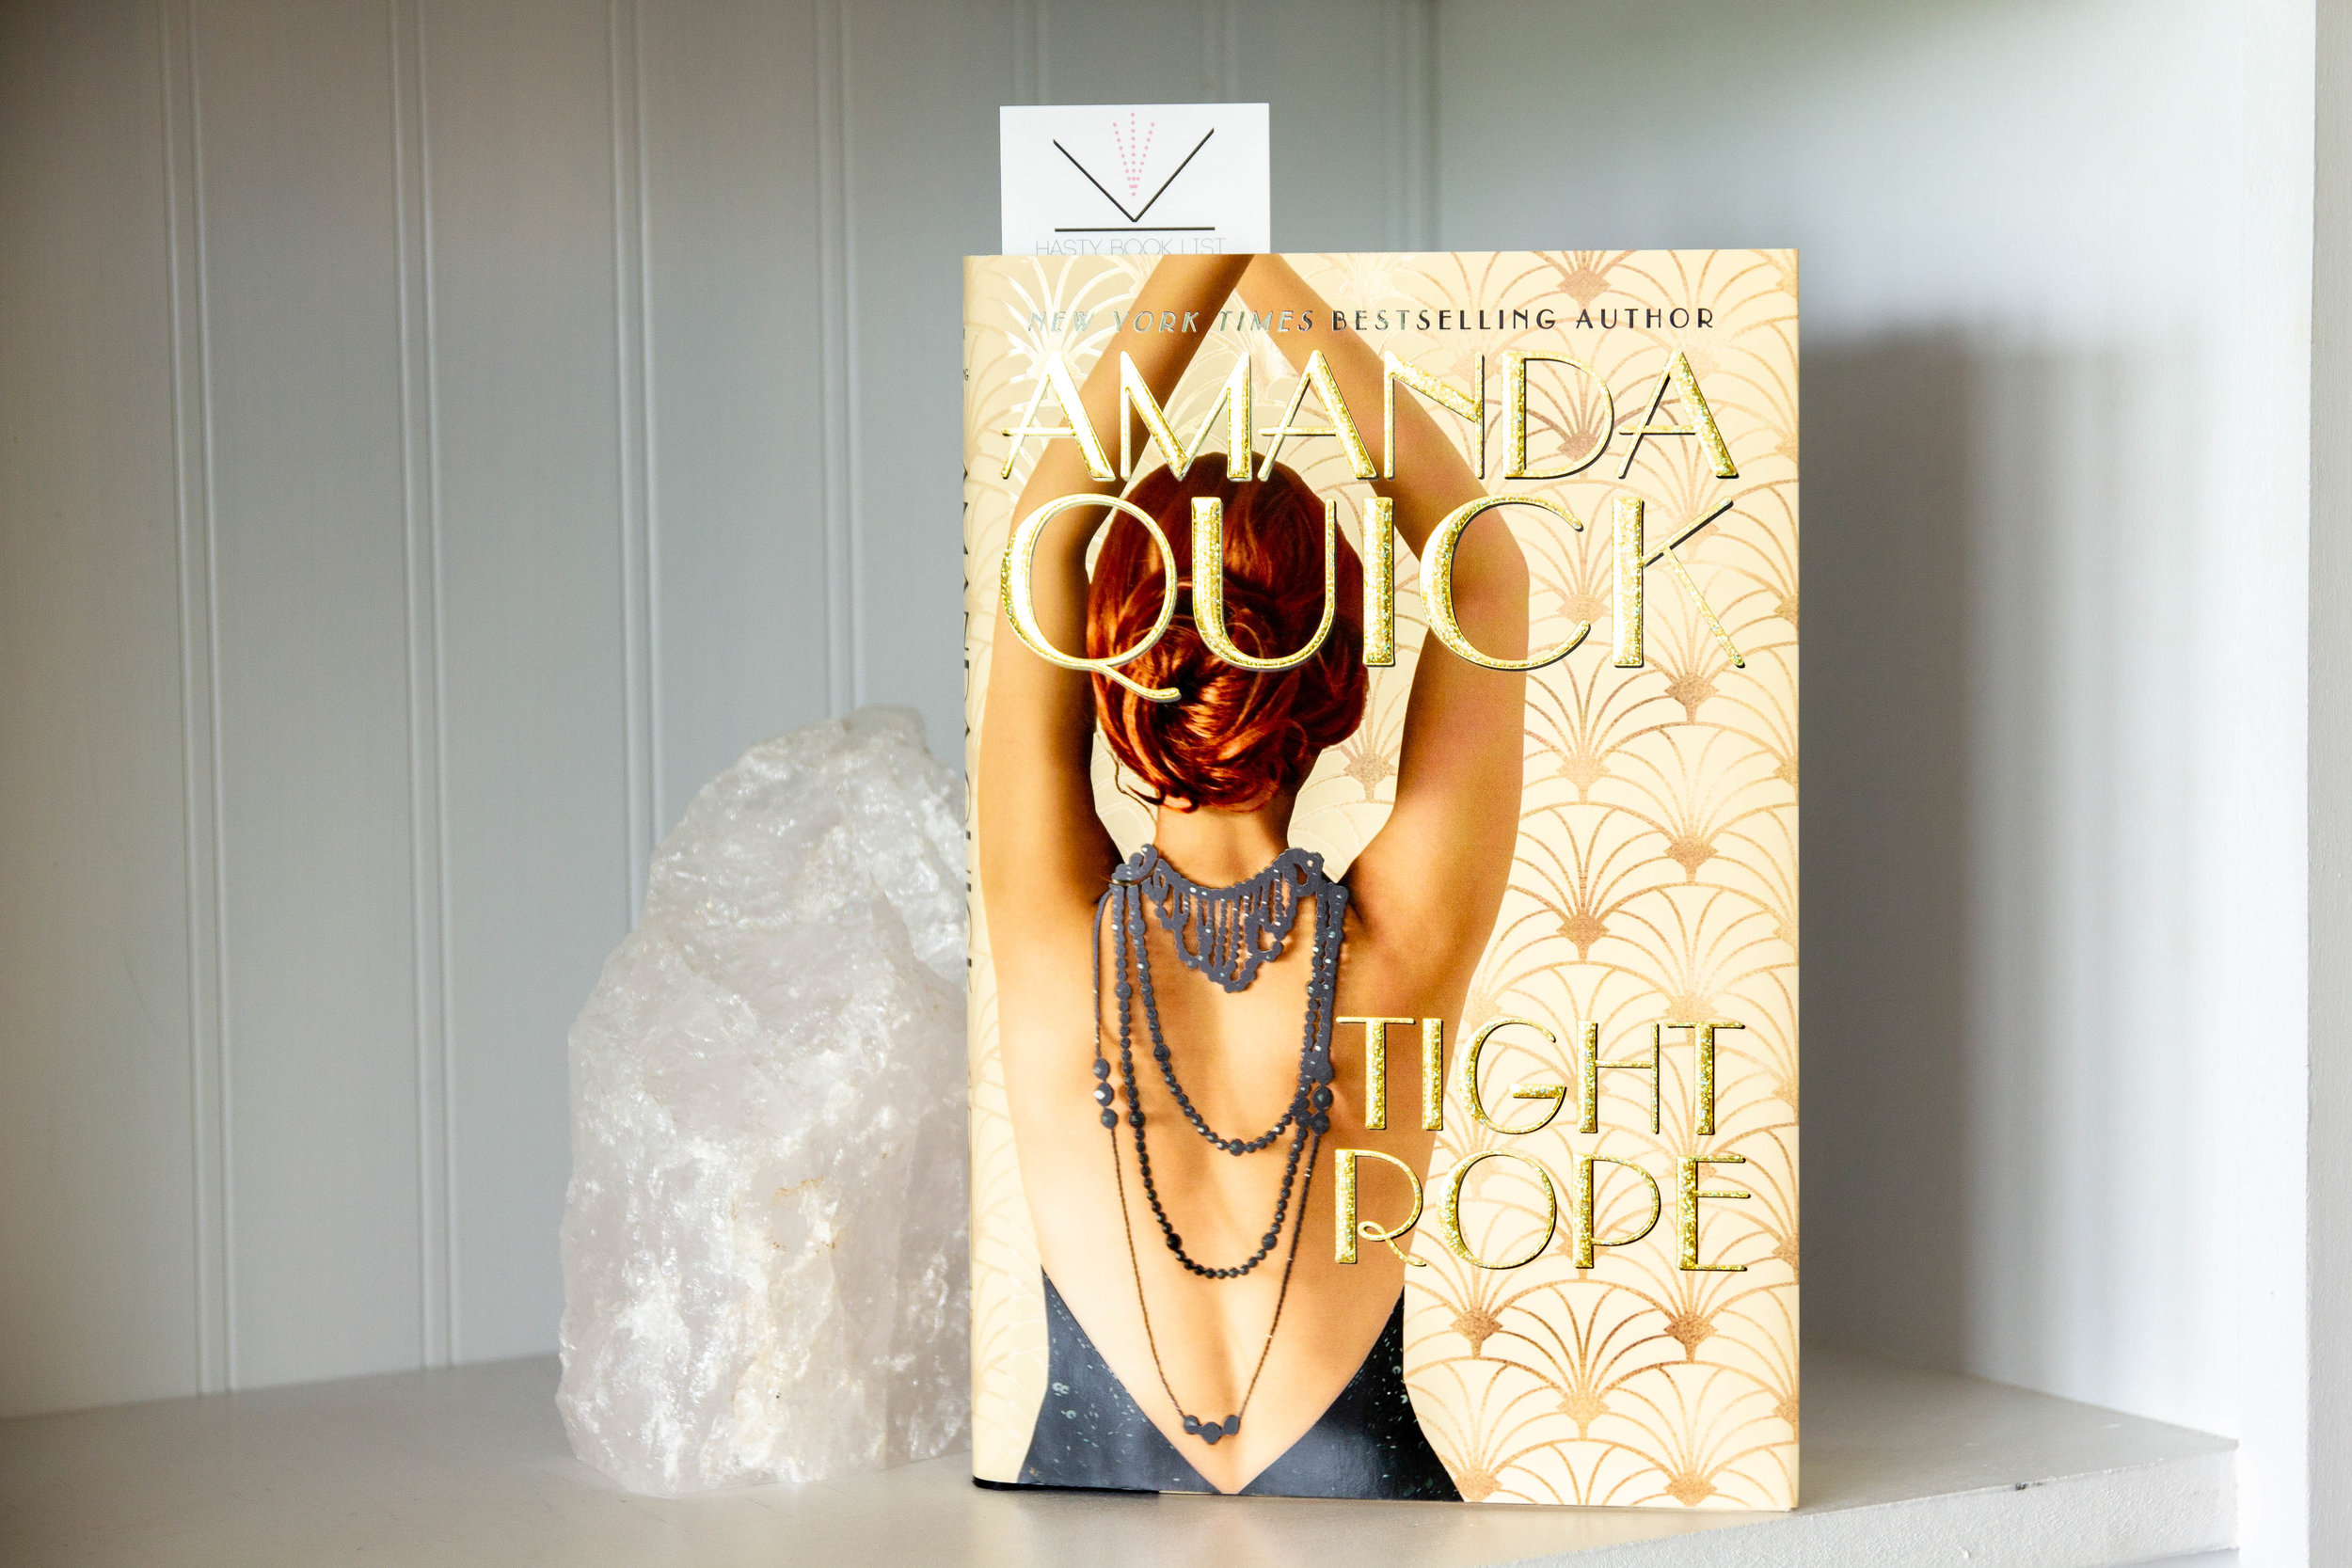 Book Feature - Tightrope by Amanda Quick